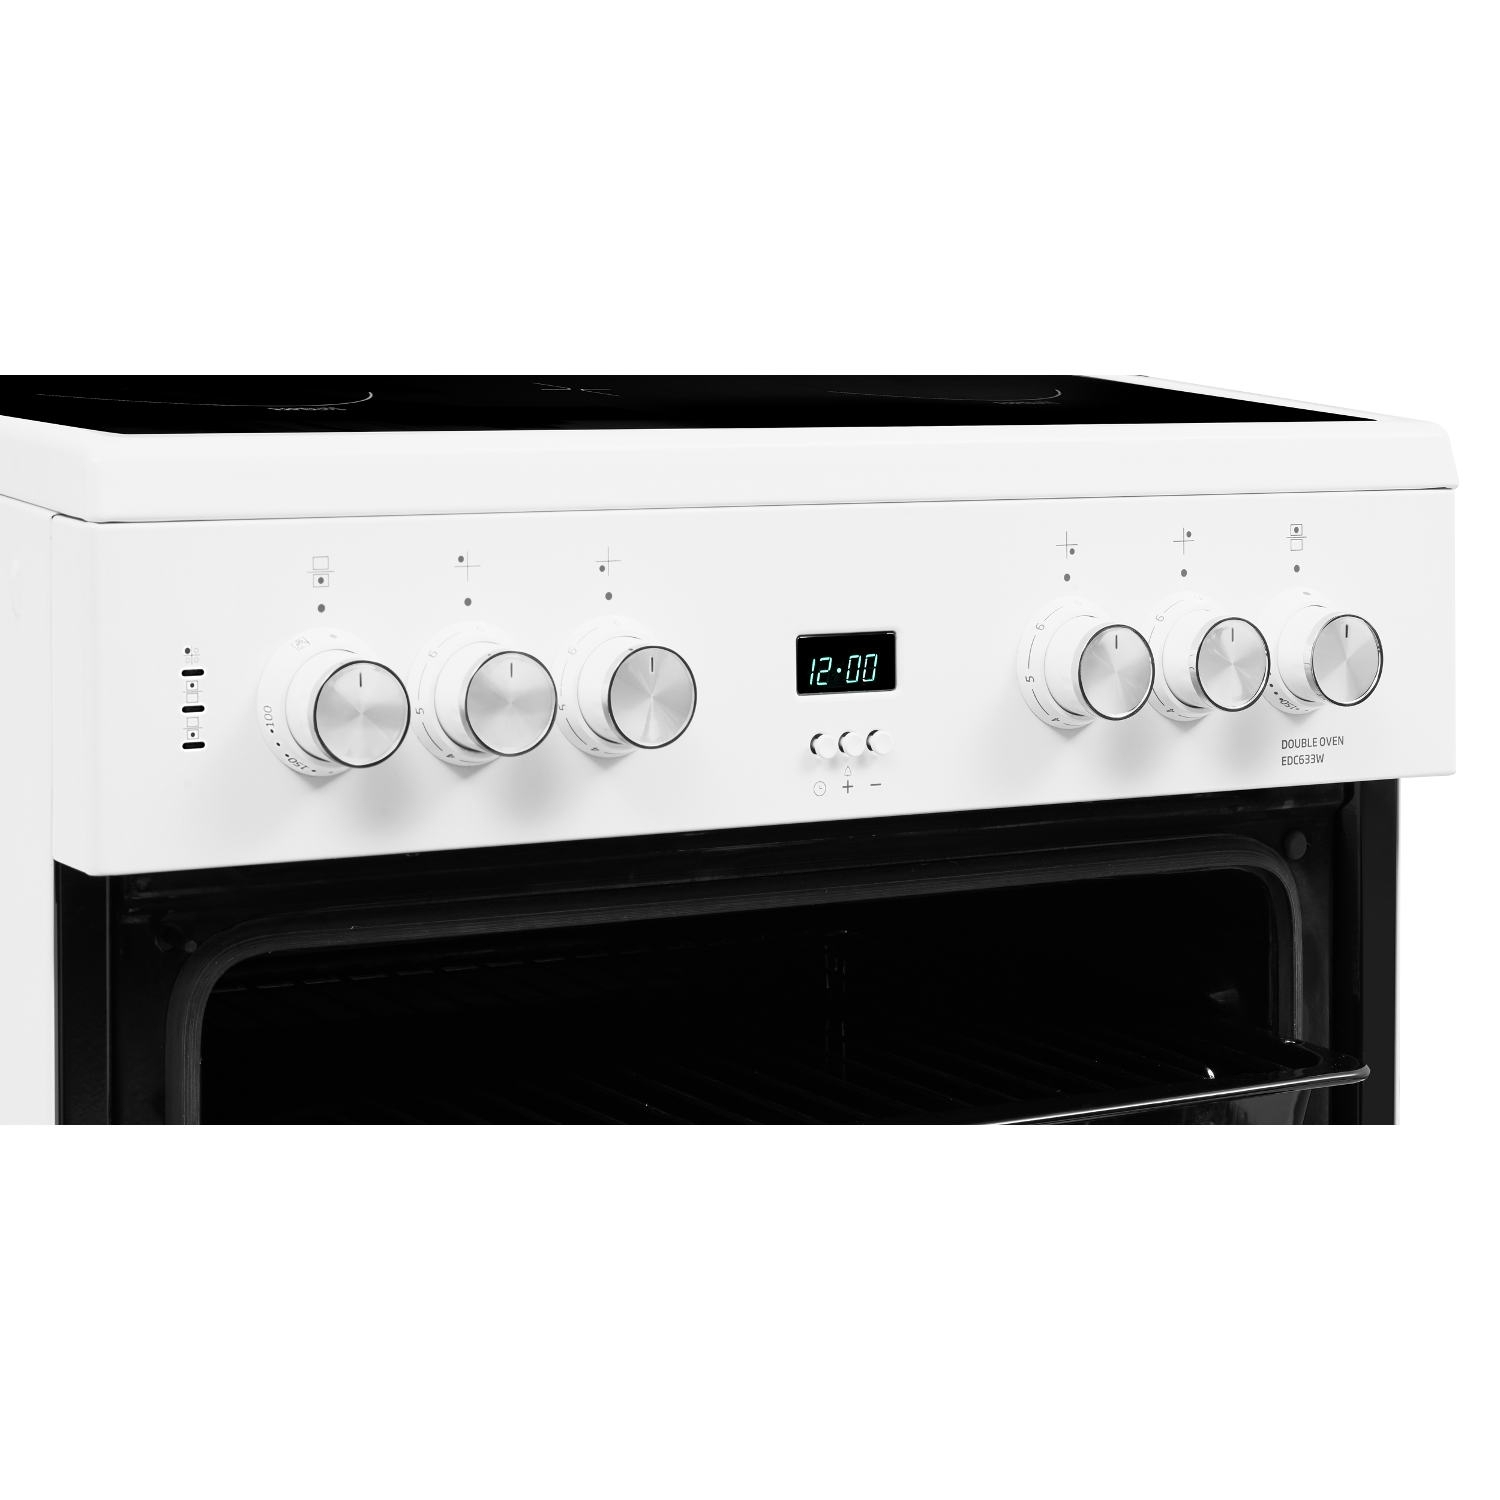 Beko 60cm Double Oven Electric Cooker with Ceramic Hob - White - A/A Rated - 6